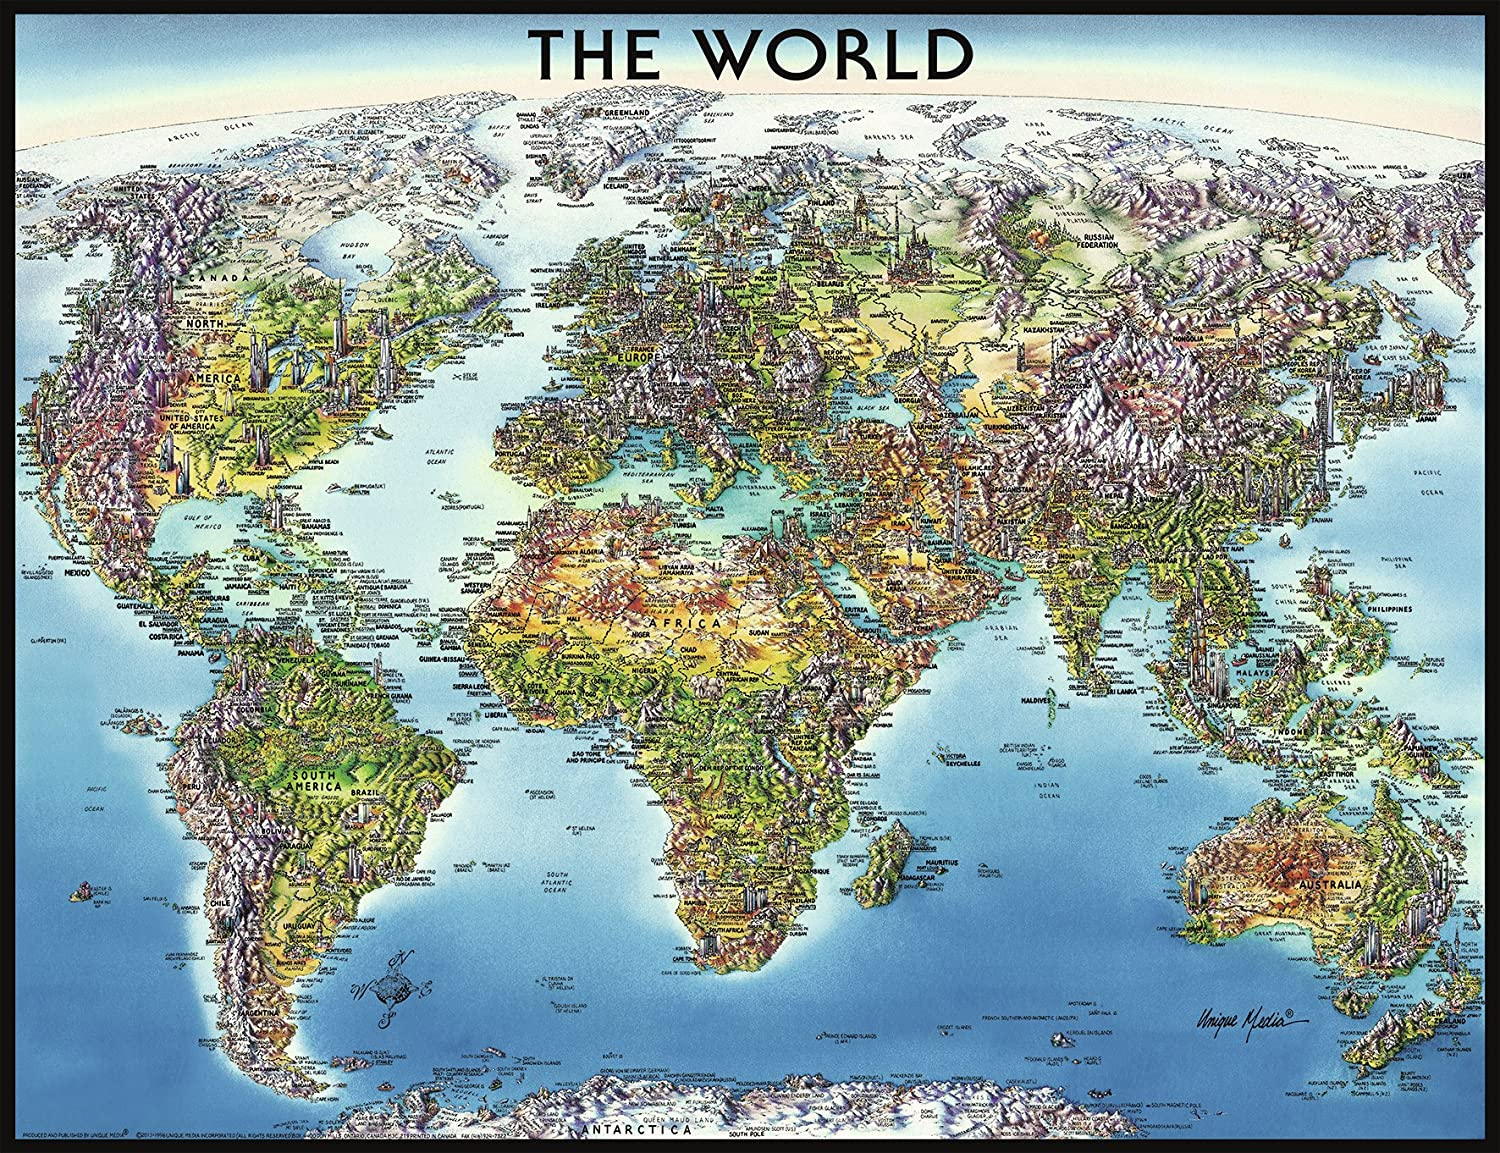 Ravensburger world map jigsaw puzzle 2000 piece jigsaw puzzles ravensburger world map jigsaw puzzle 2000 piece jigsaw puzzles amazon canada gumiabroncs Choice Image